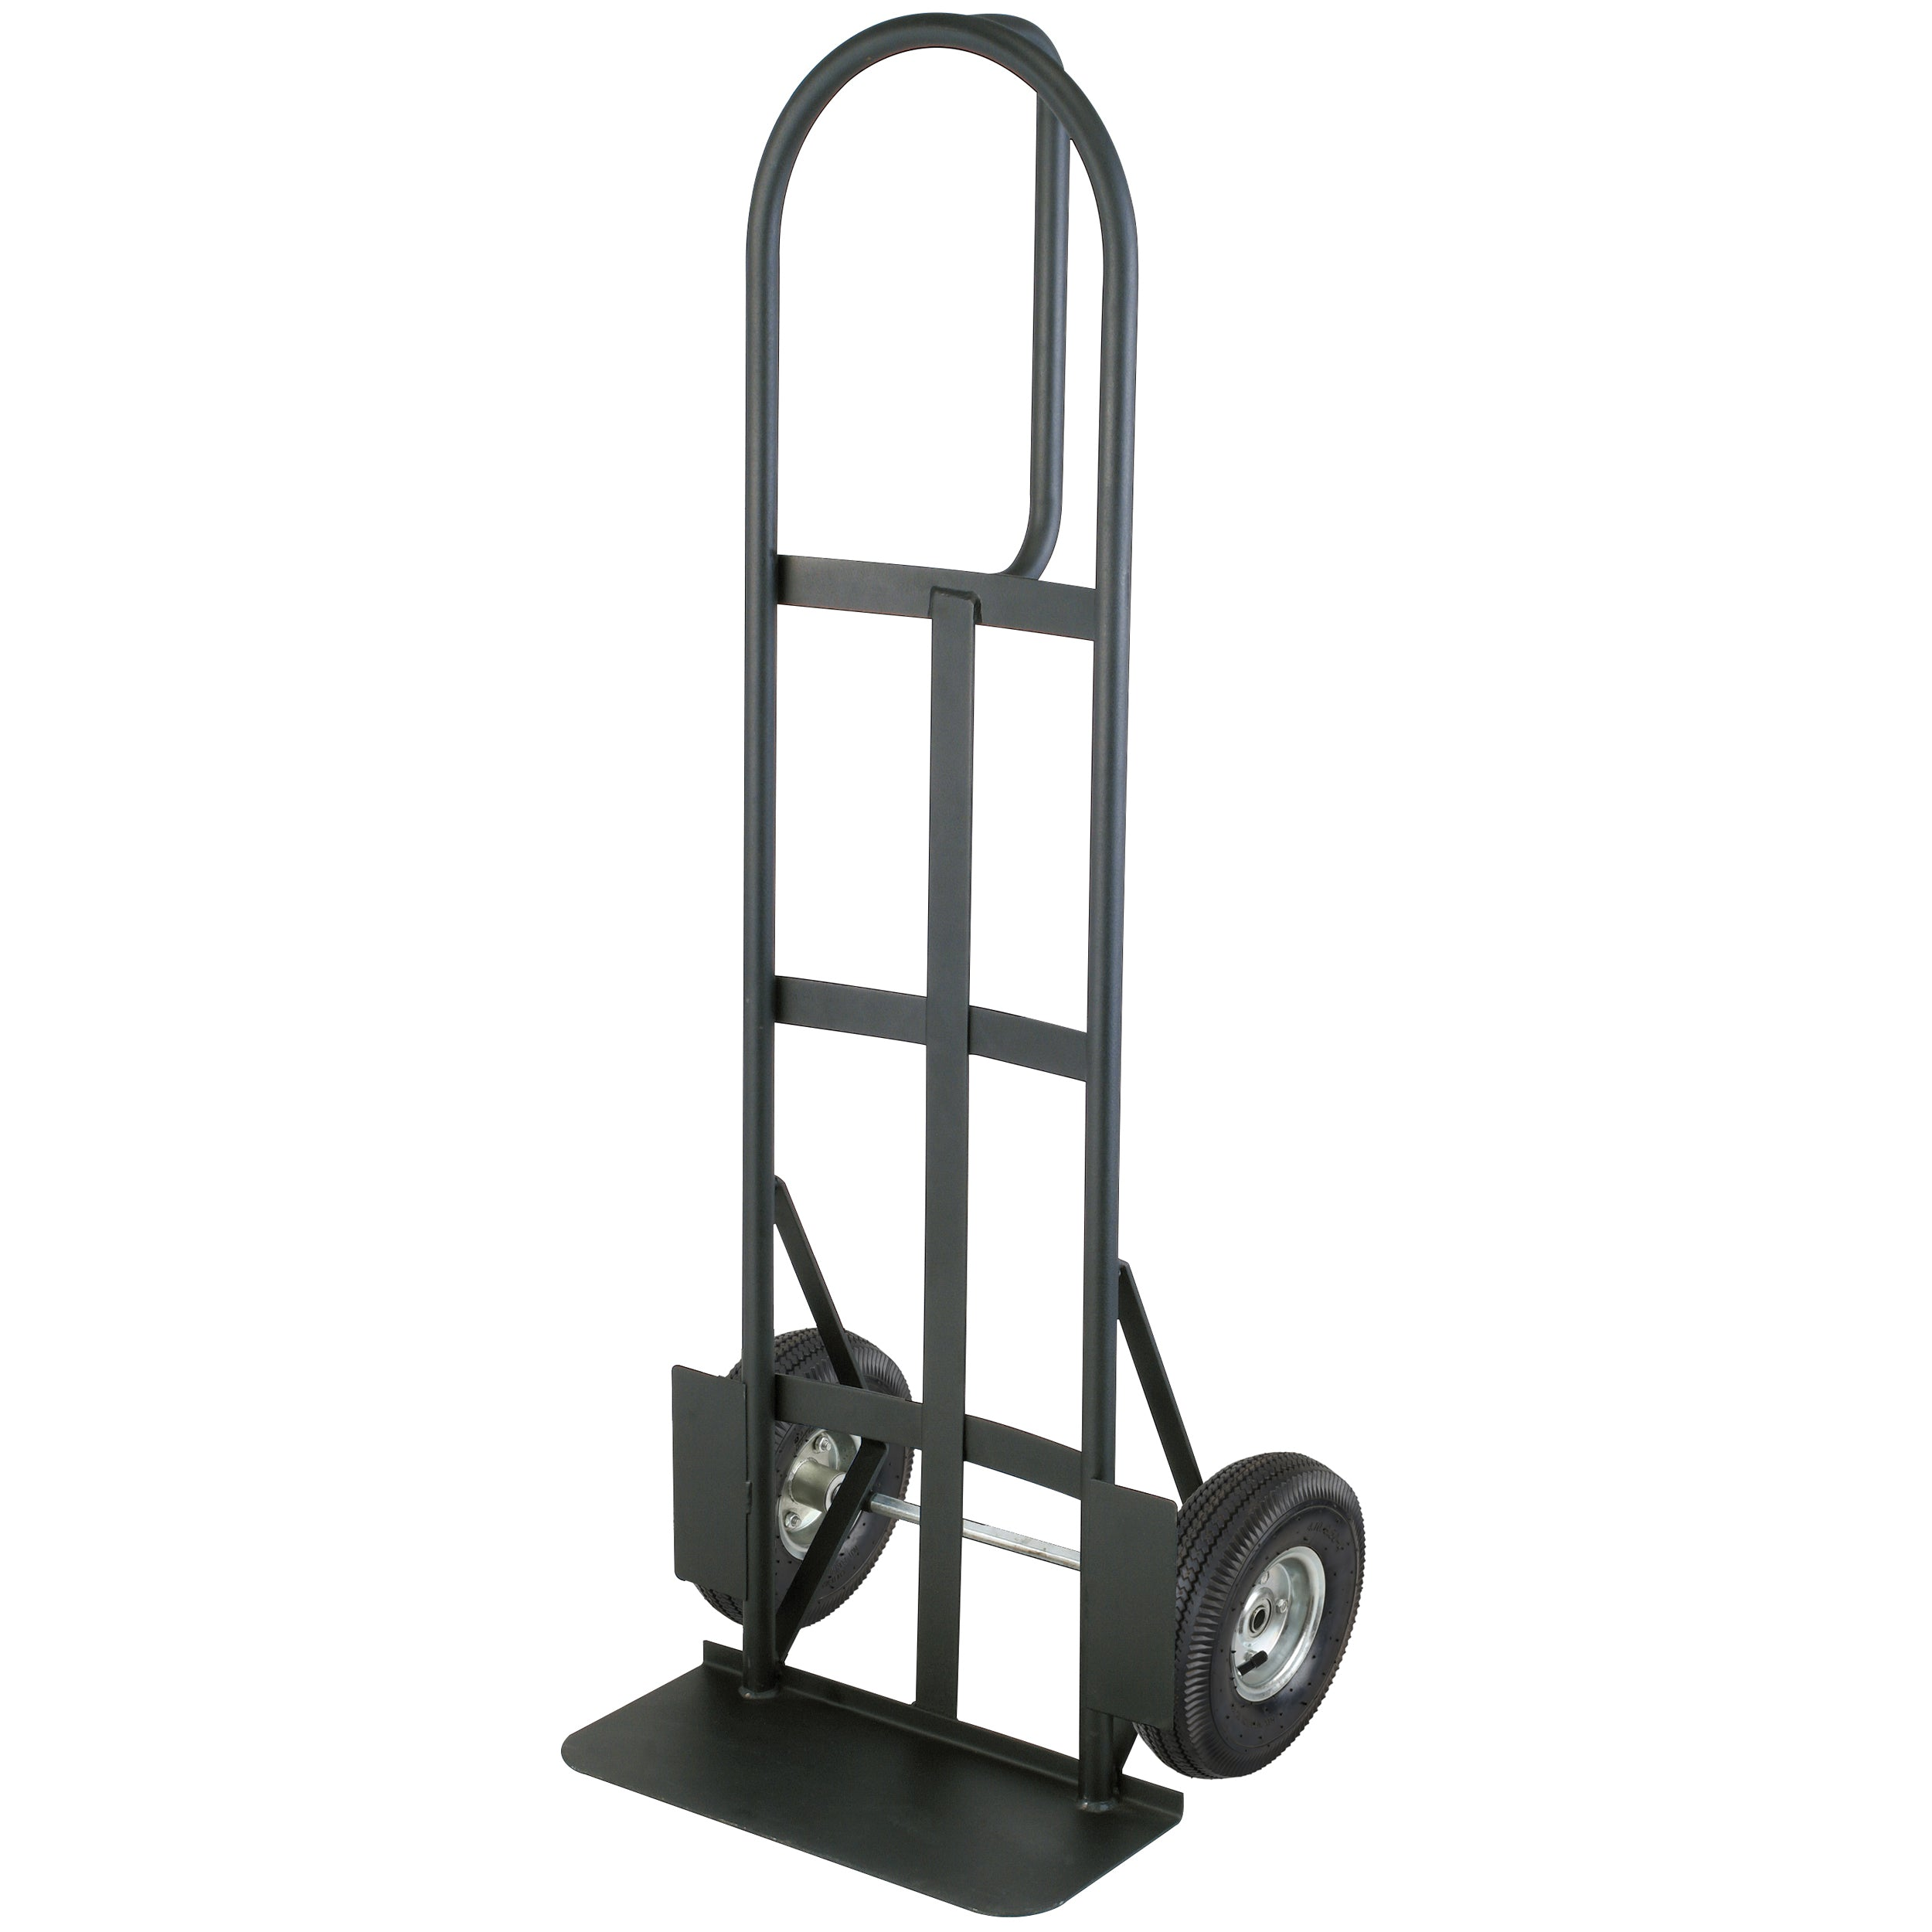 800LB HAND TRUCK, PNUEMATIC WHEELS